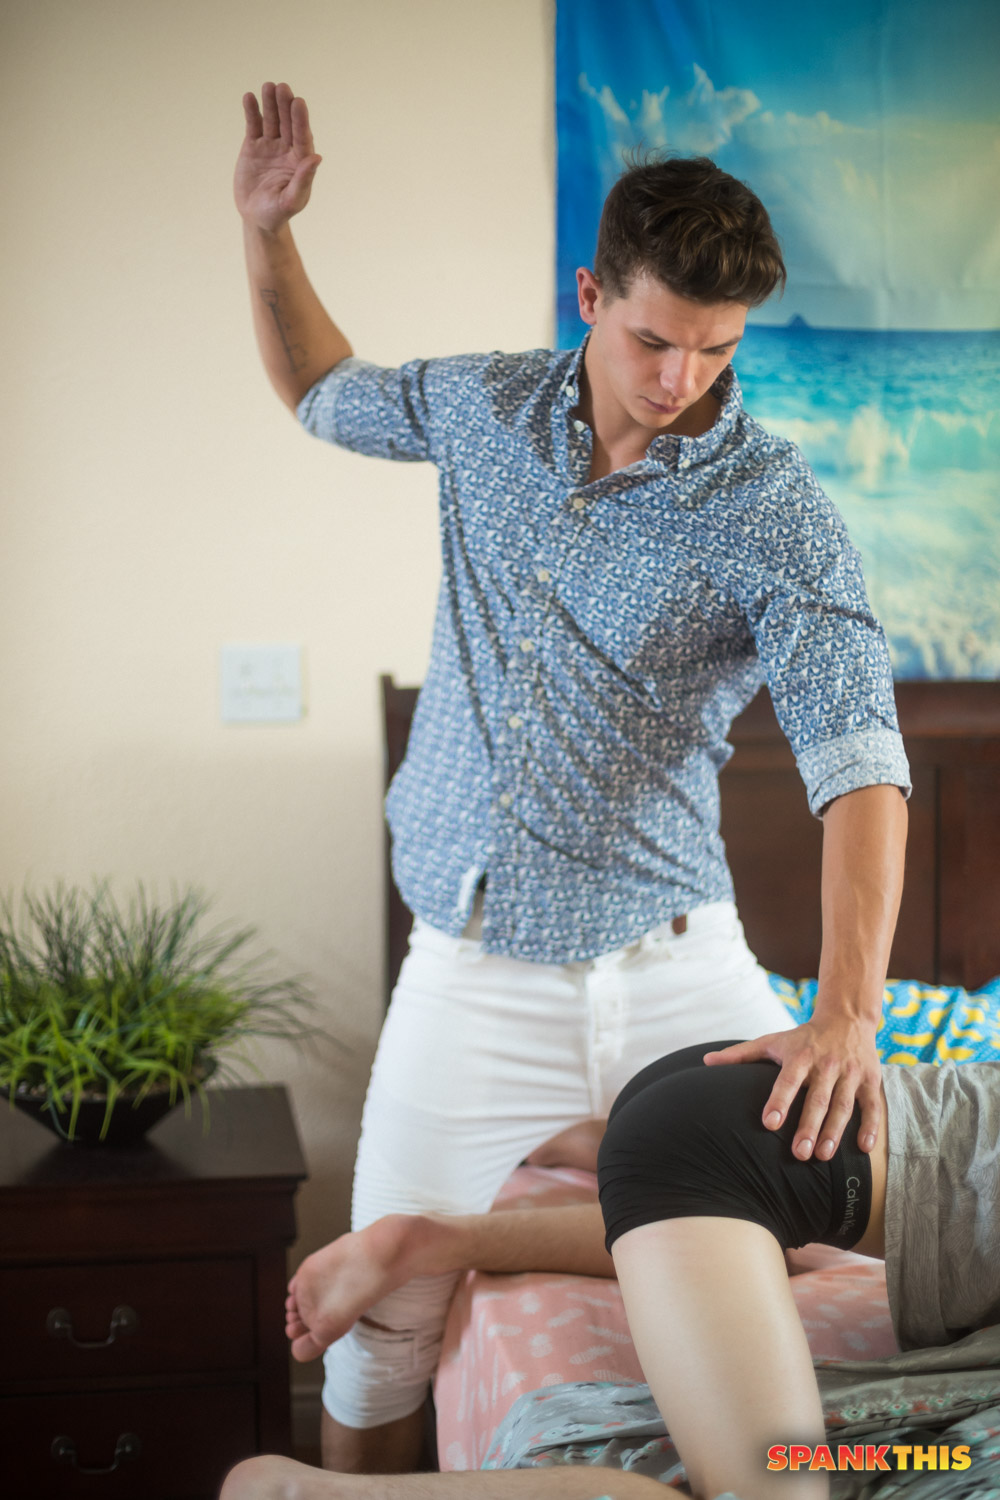 Riley Finch spanked by Johnny Hands in underwear